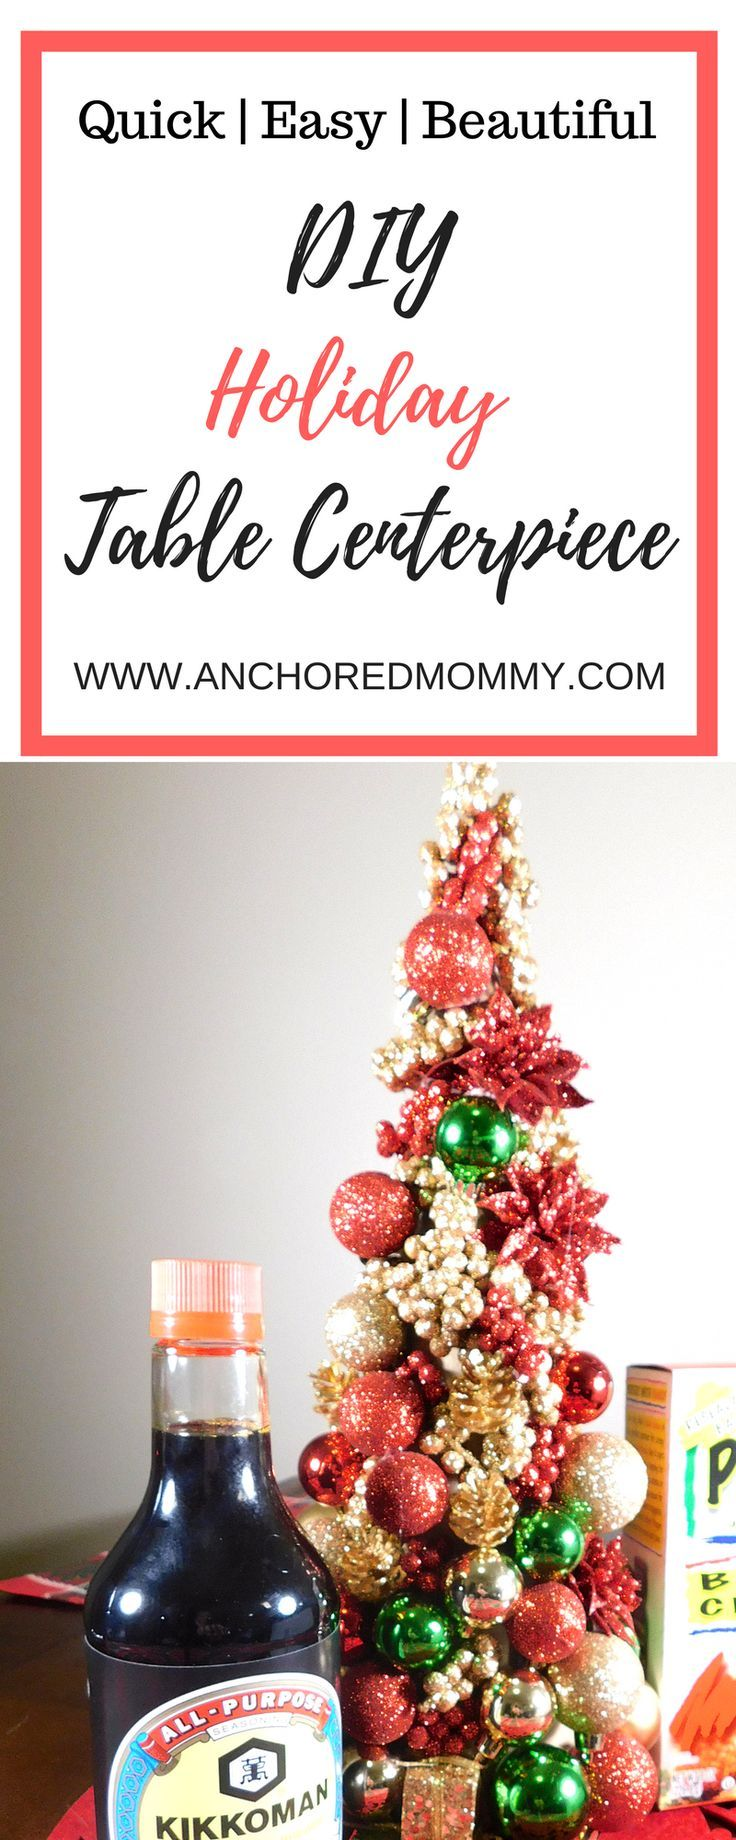 Easy DIY Holiday Centerpiece | Mom Bloggers | Pinterest | Holiday ...